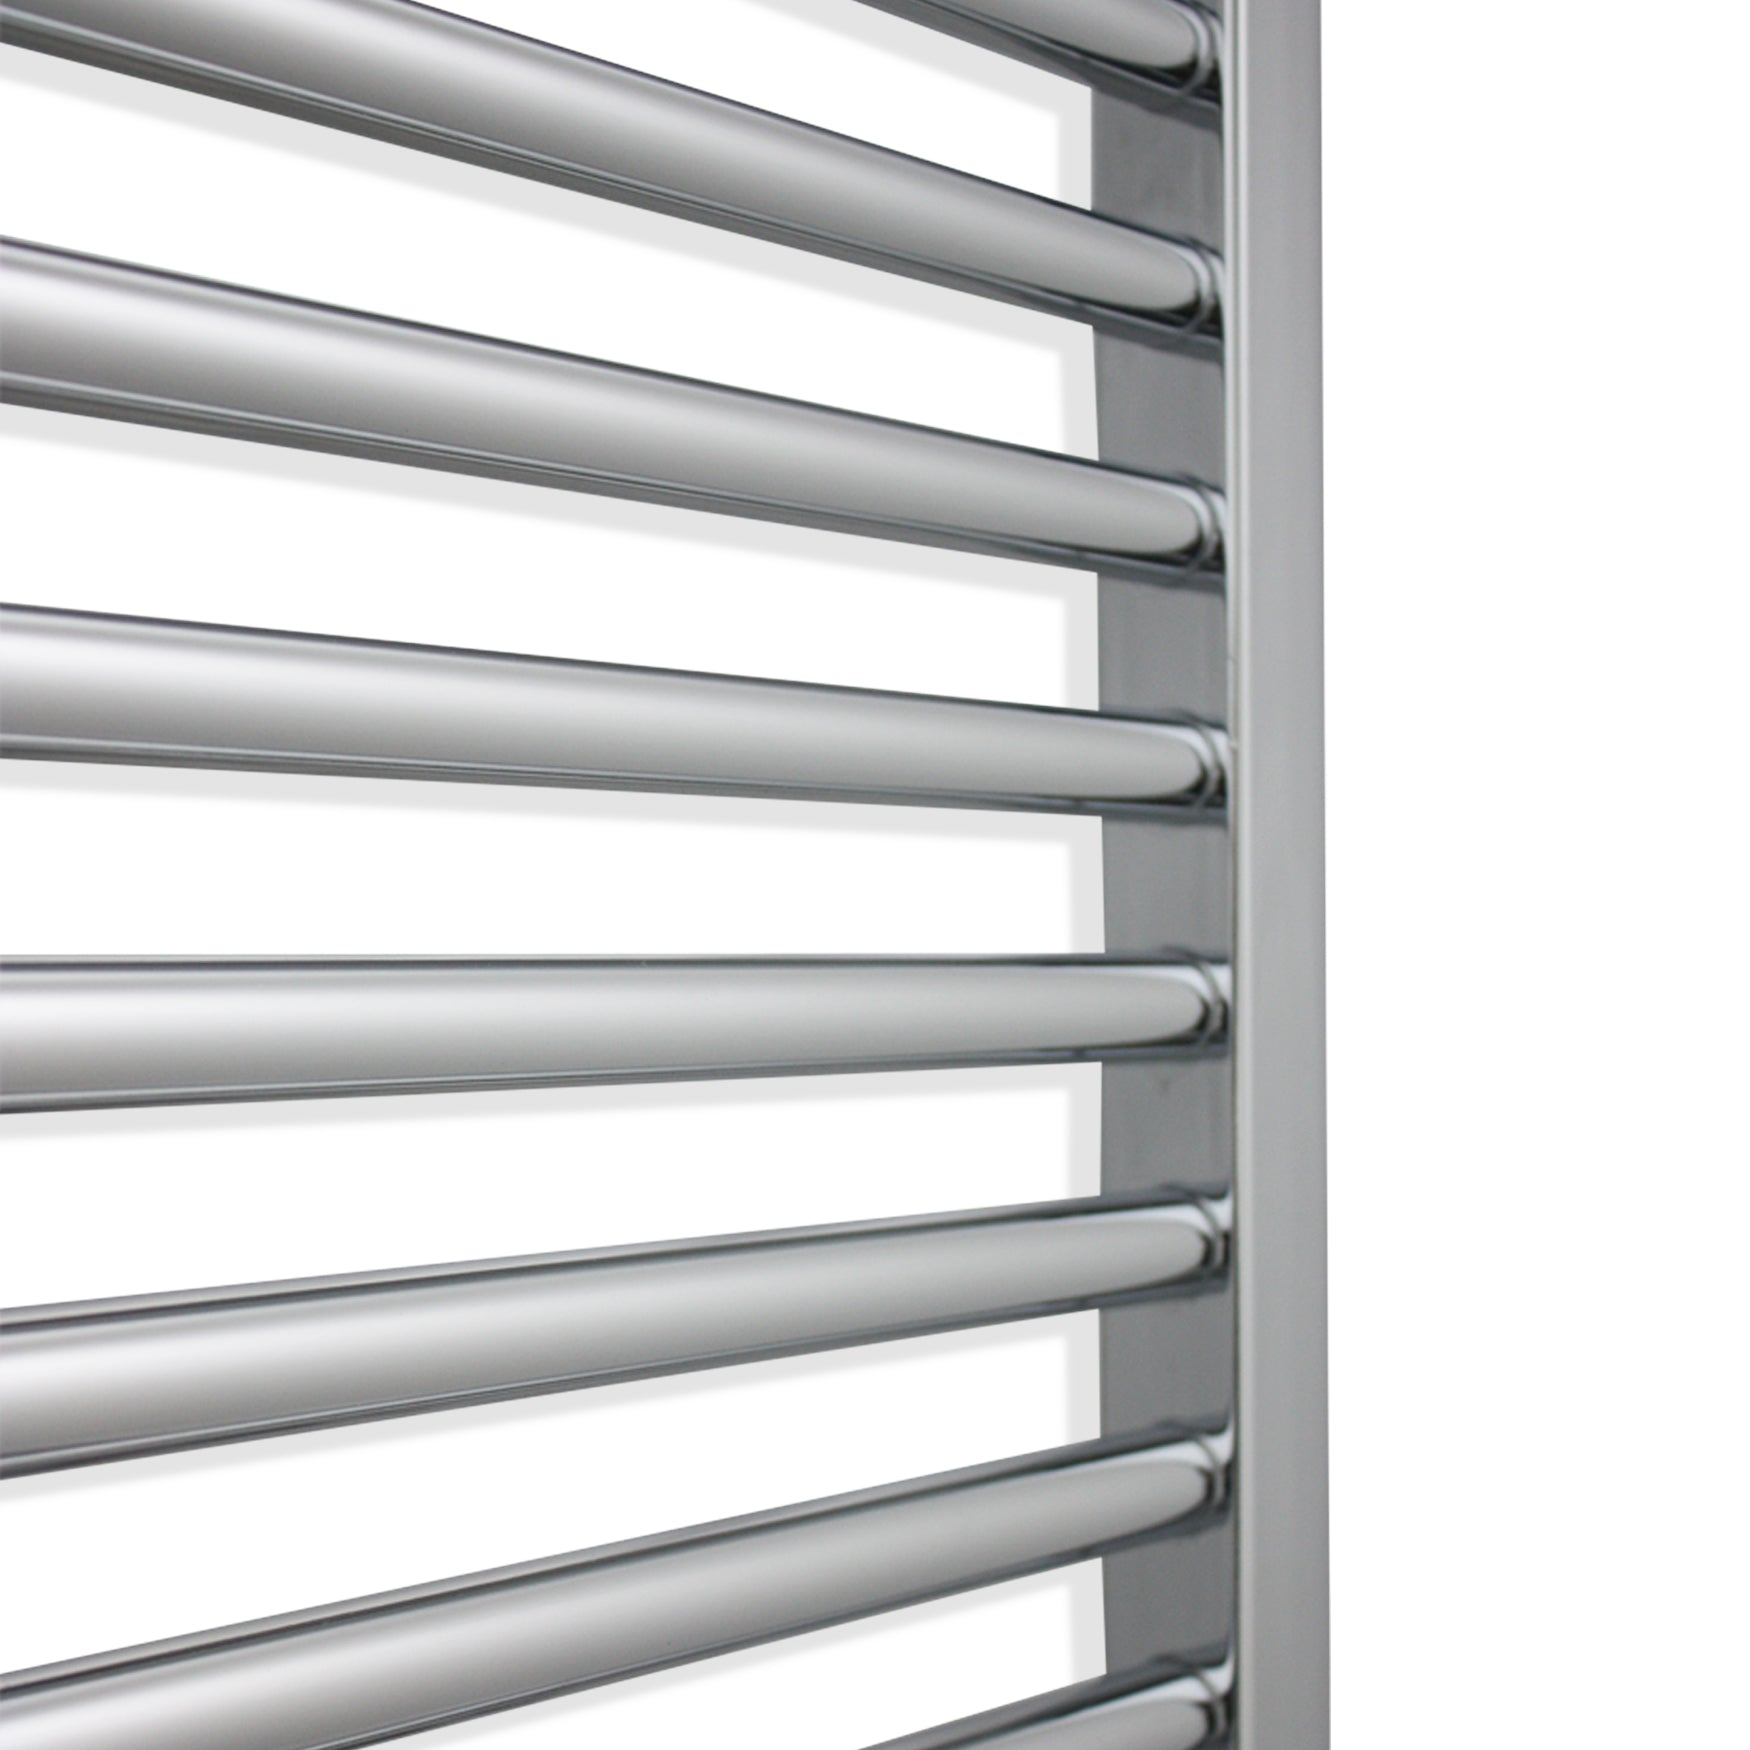 750mm Wide 1000mm High Flat Or Curved Chrome Pre-Filled Electric Heated Towel Rail Radiator HTR